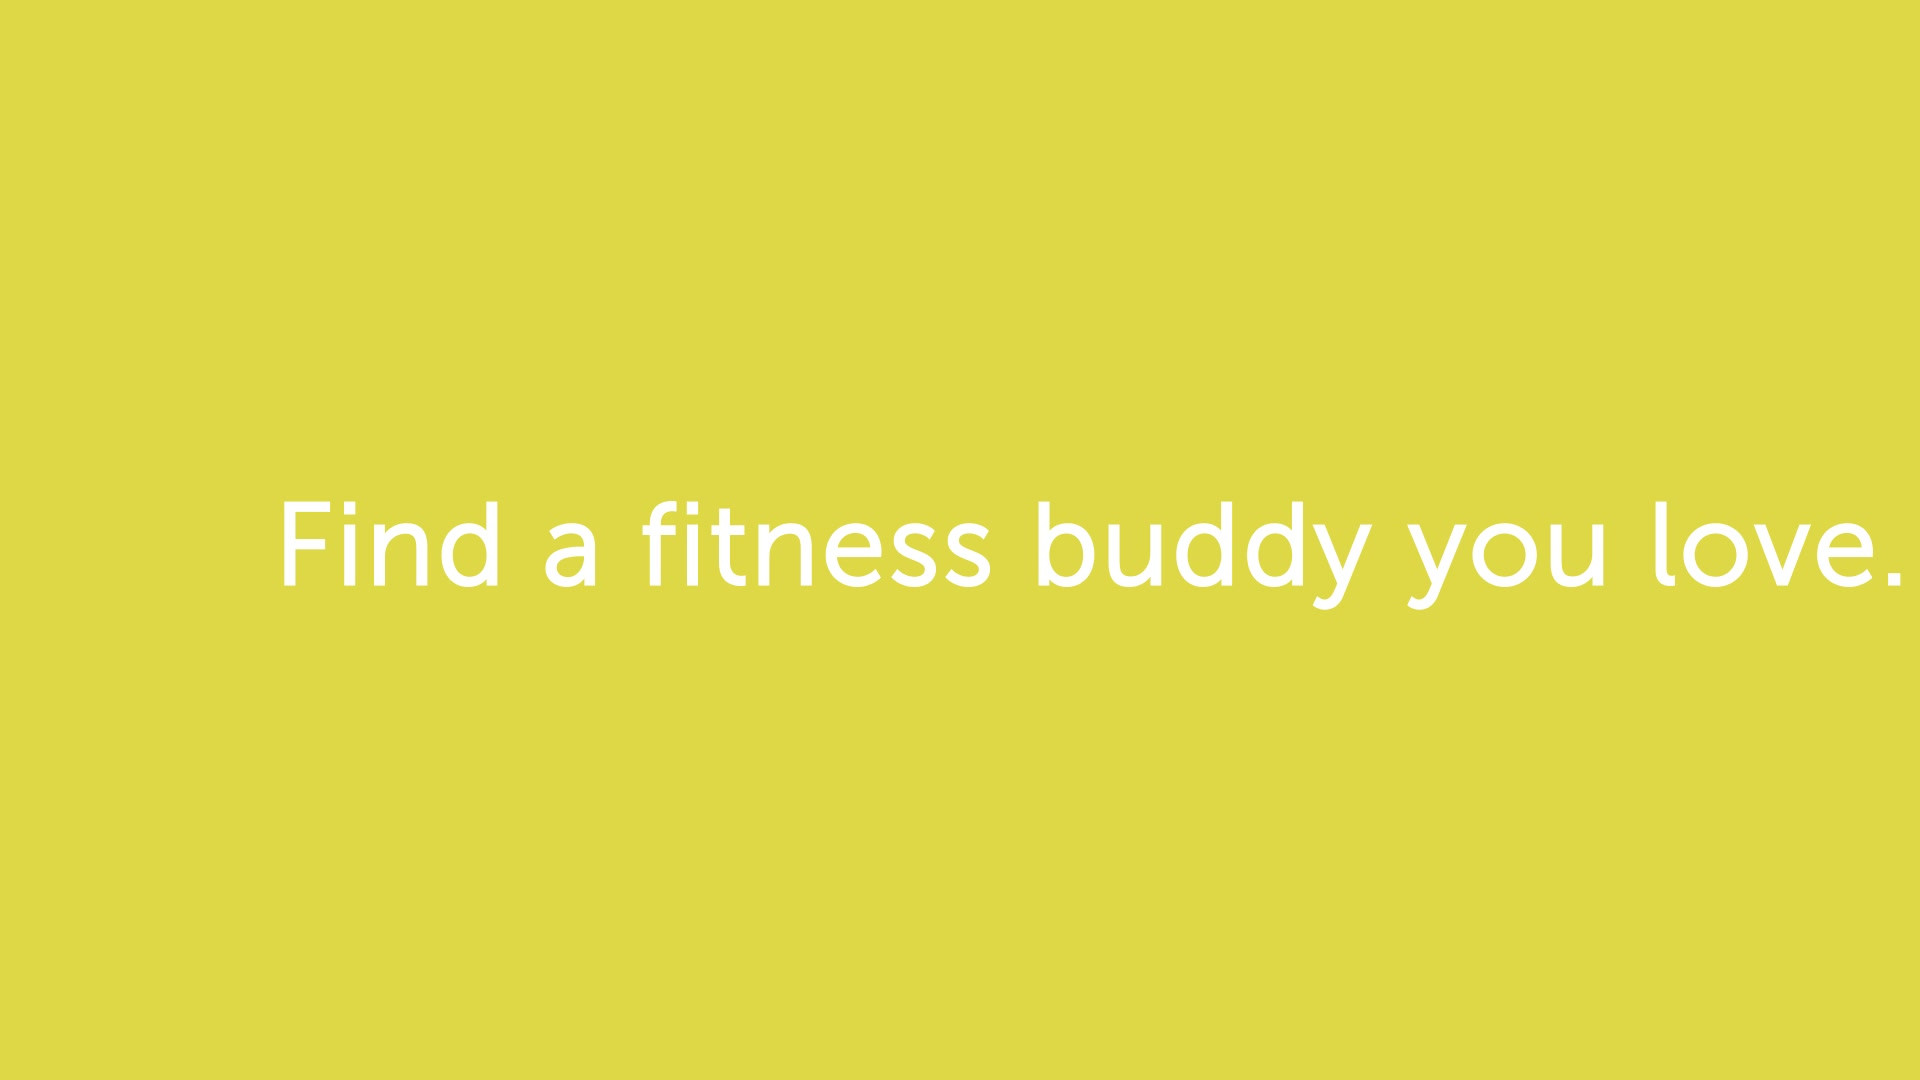 Exercise Tips Video, 2018